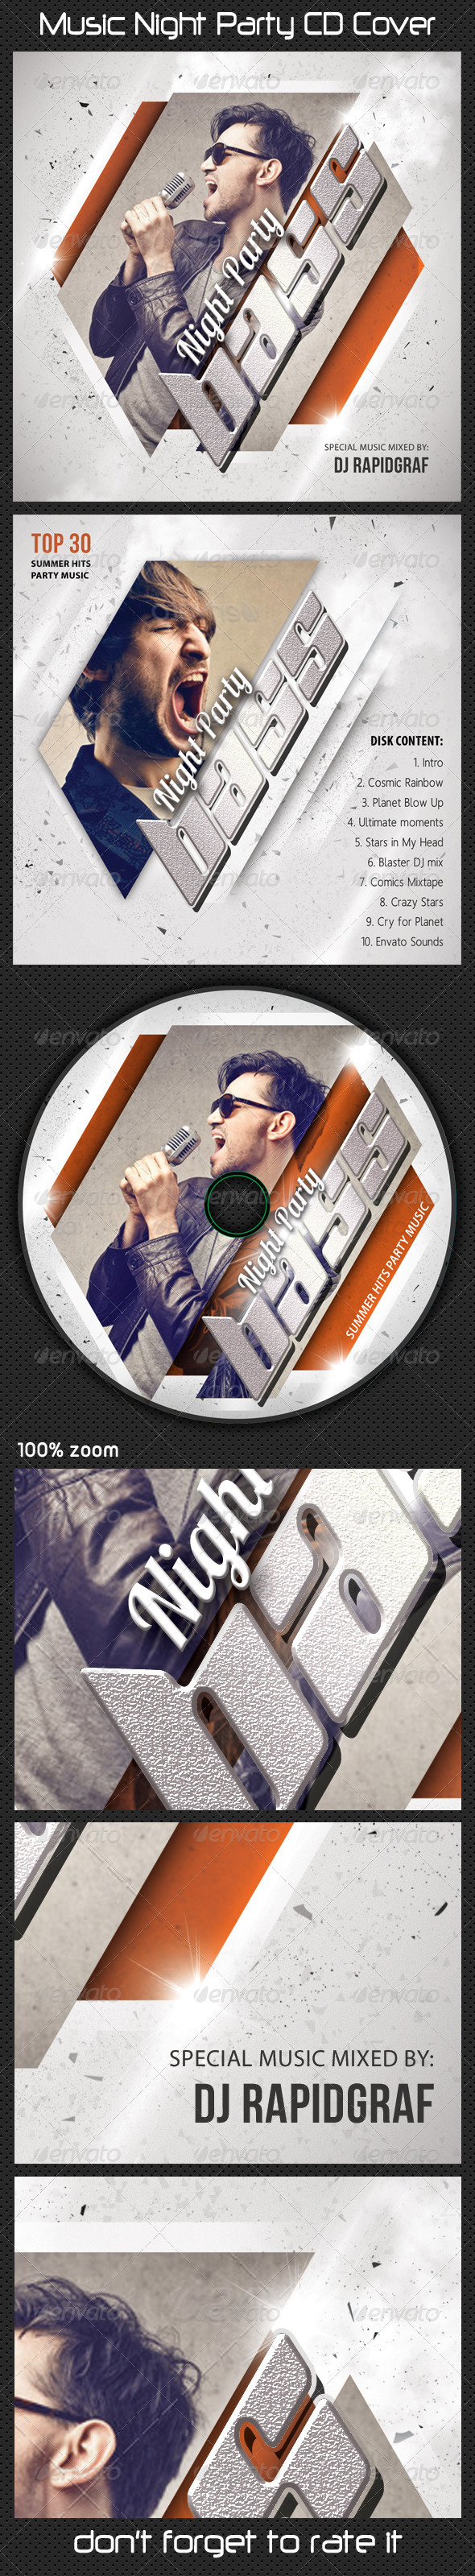 GraphicRiver Music Night Party CD Cover 12 8588032